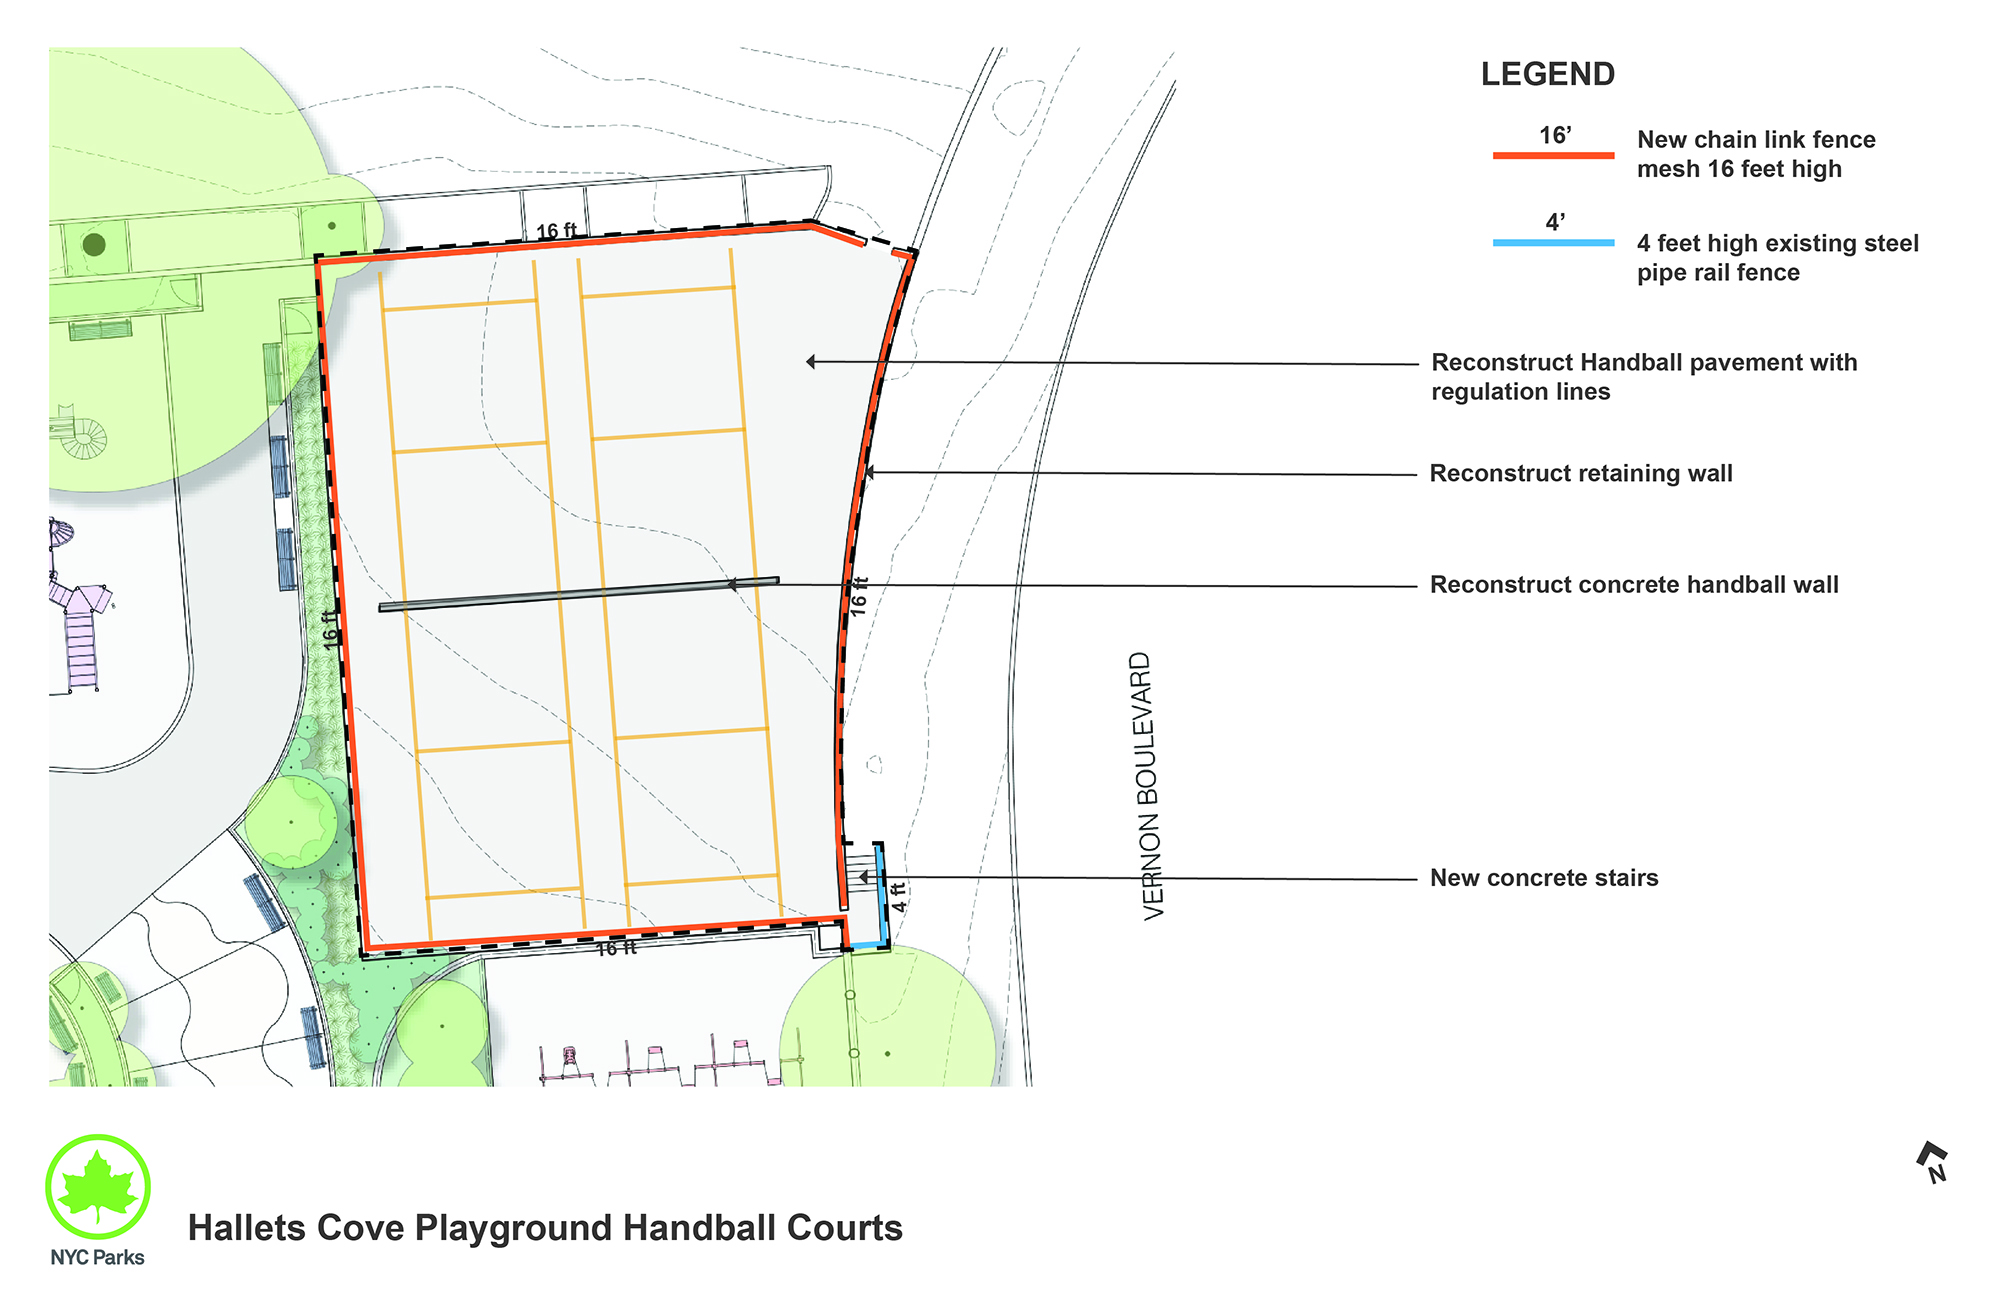 Design of Hallets Cove Playground Handball Court Reconstruction